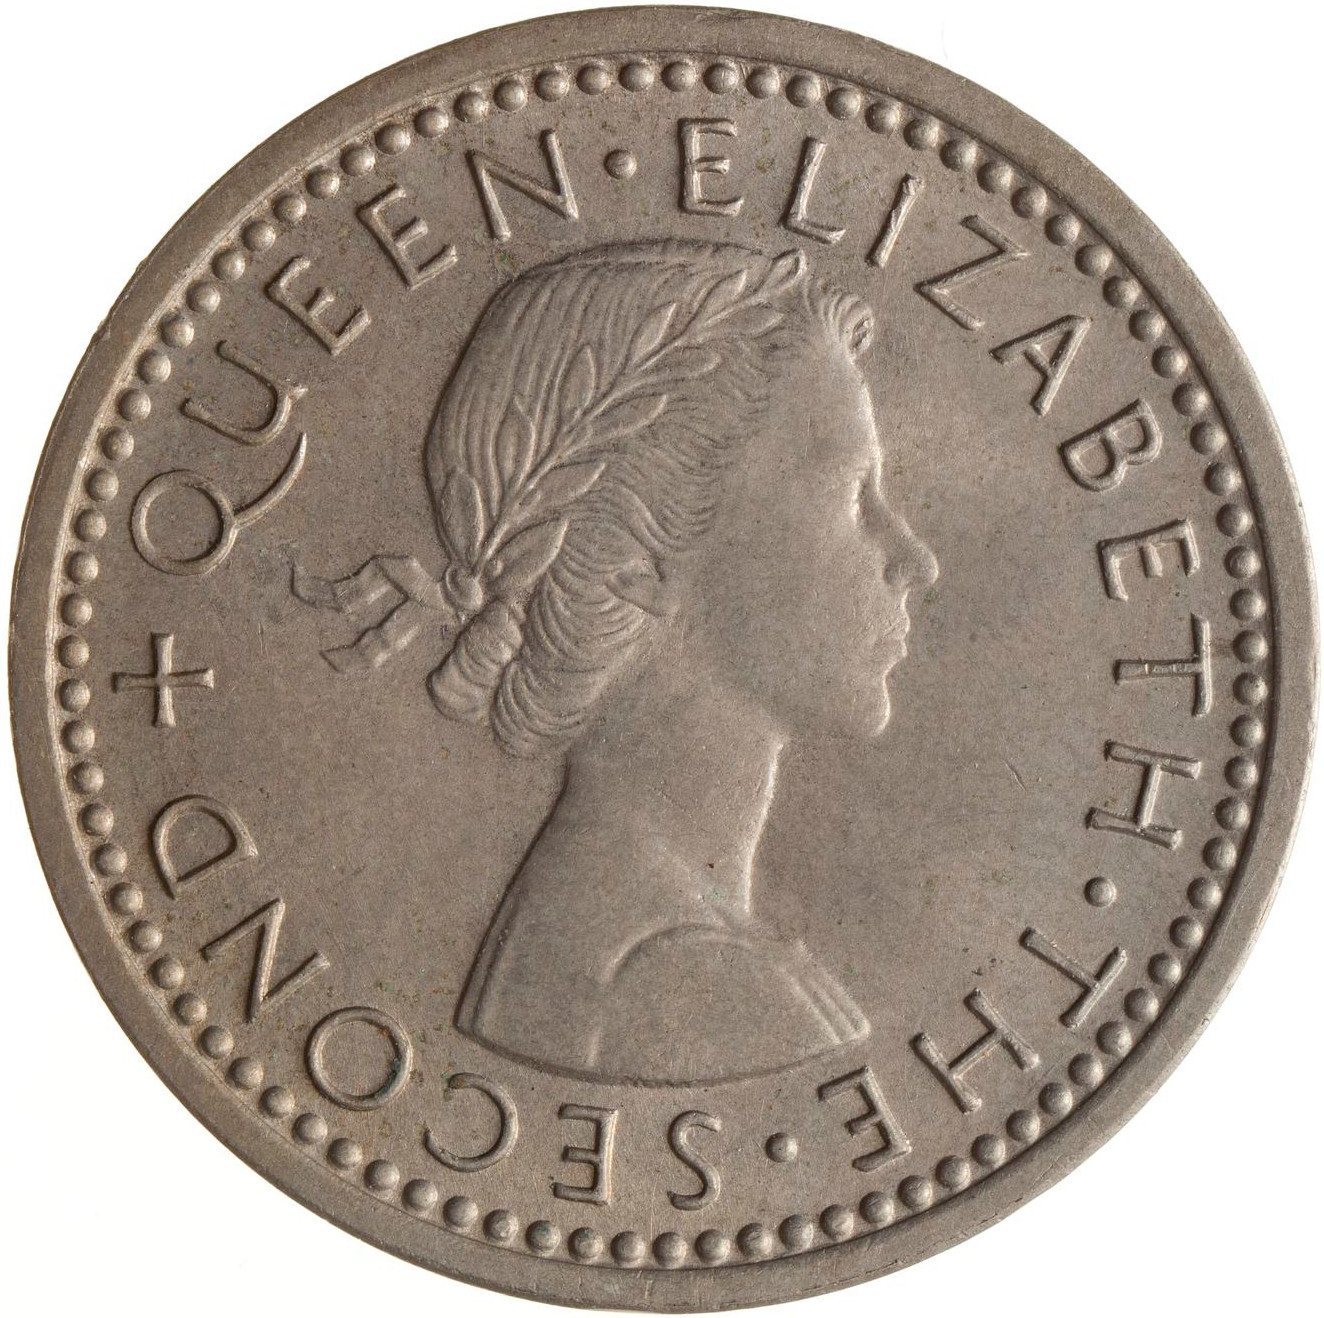 Threepence 1962: Photo Coin - 3 Pence, New Zealand, 1962